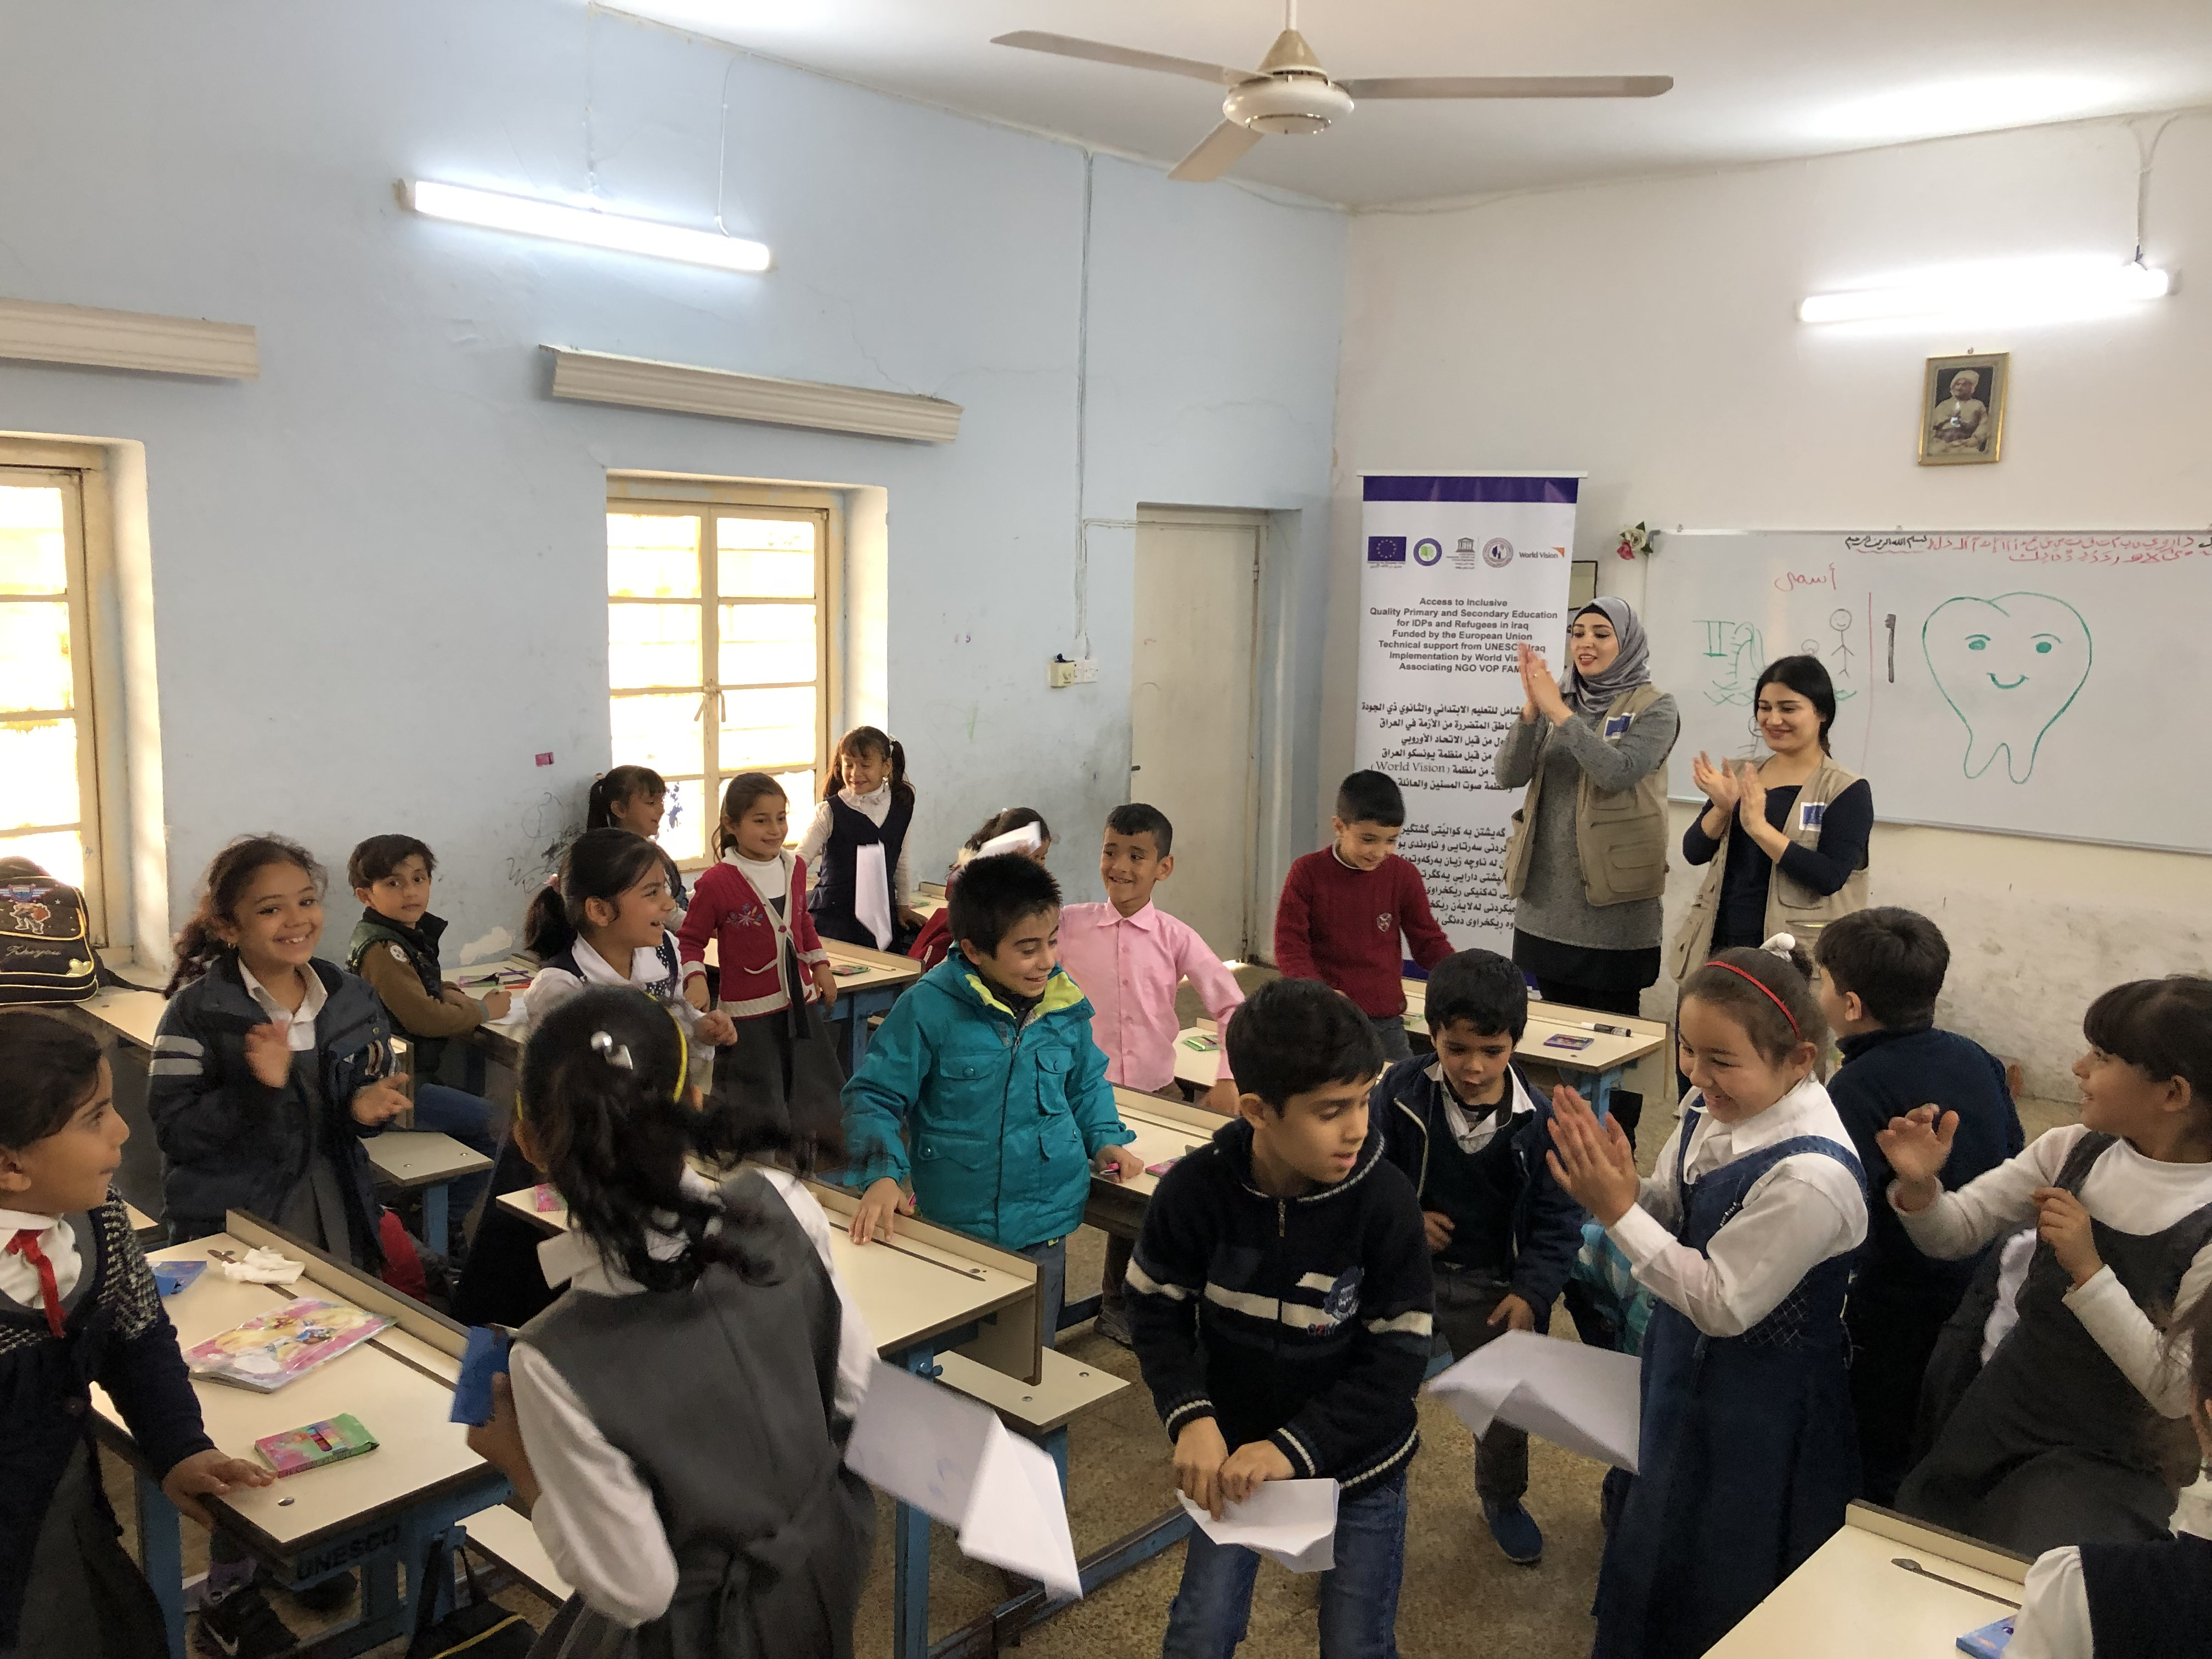 Children flying their paper planes to get rid of negative feelings as part of the psychosocial support session at Al-Elm Al-Nafe'e Primary Coed School for IDPs in Erbil, Iraq